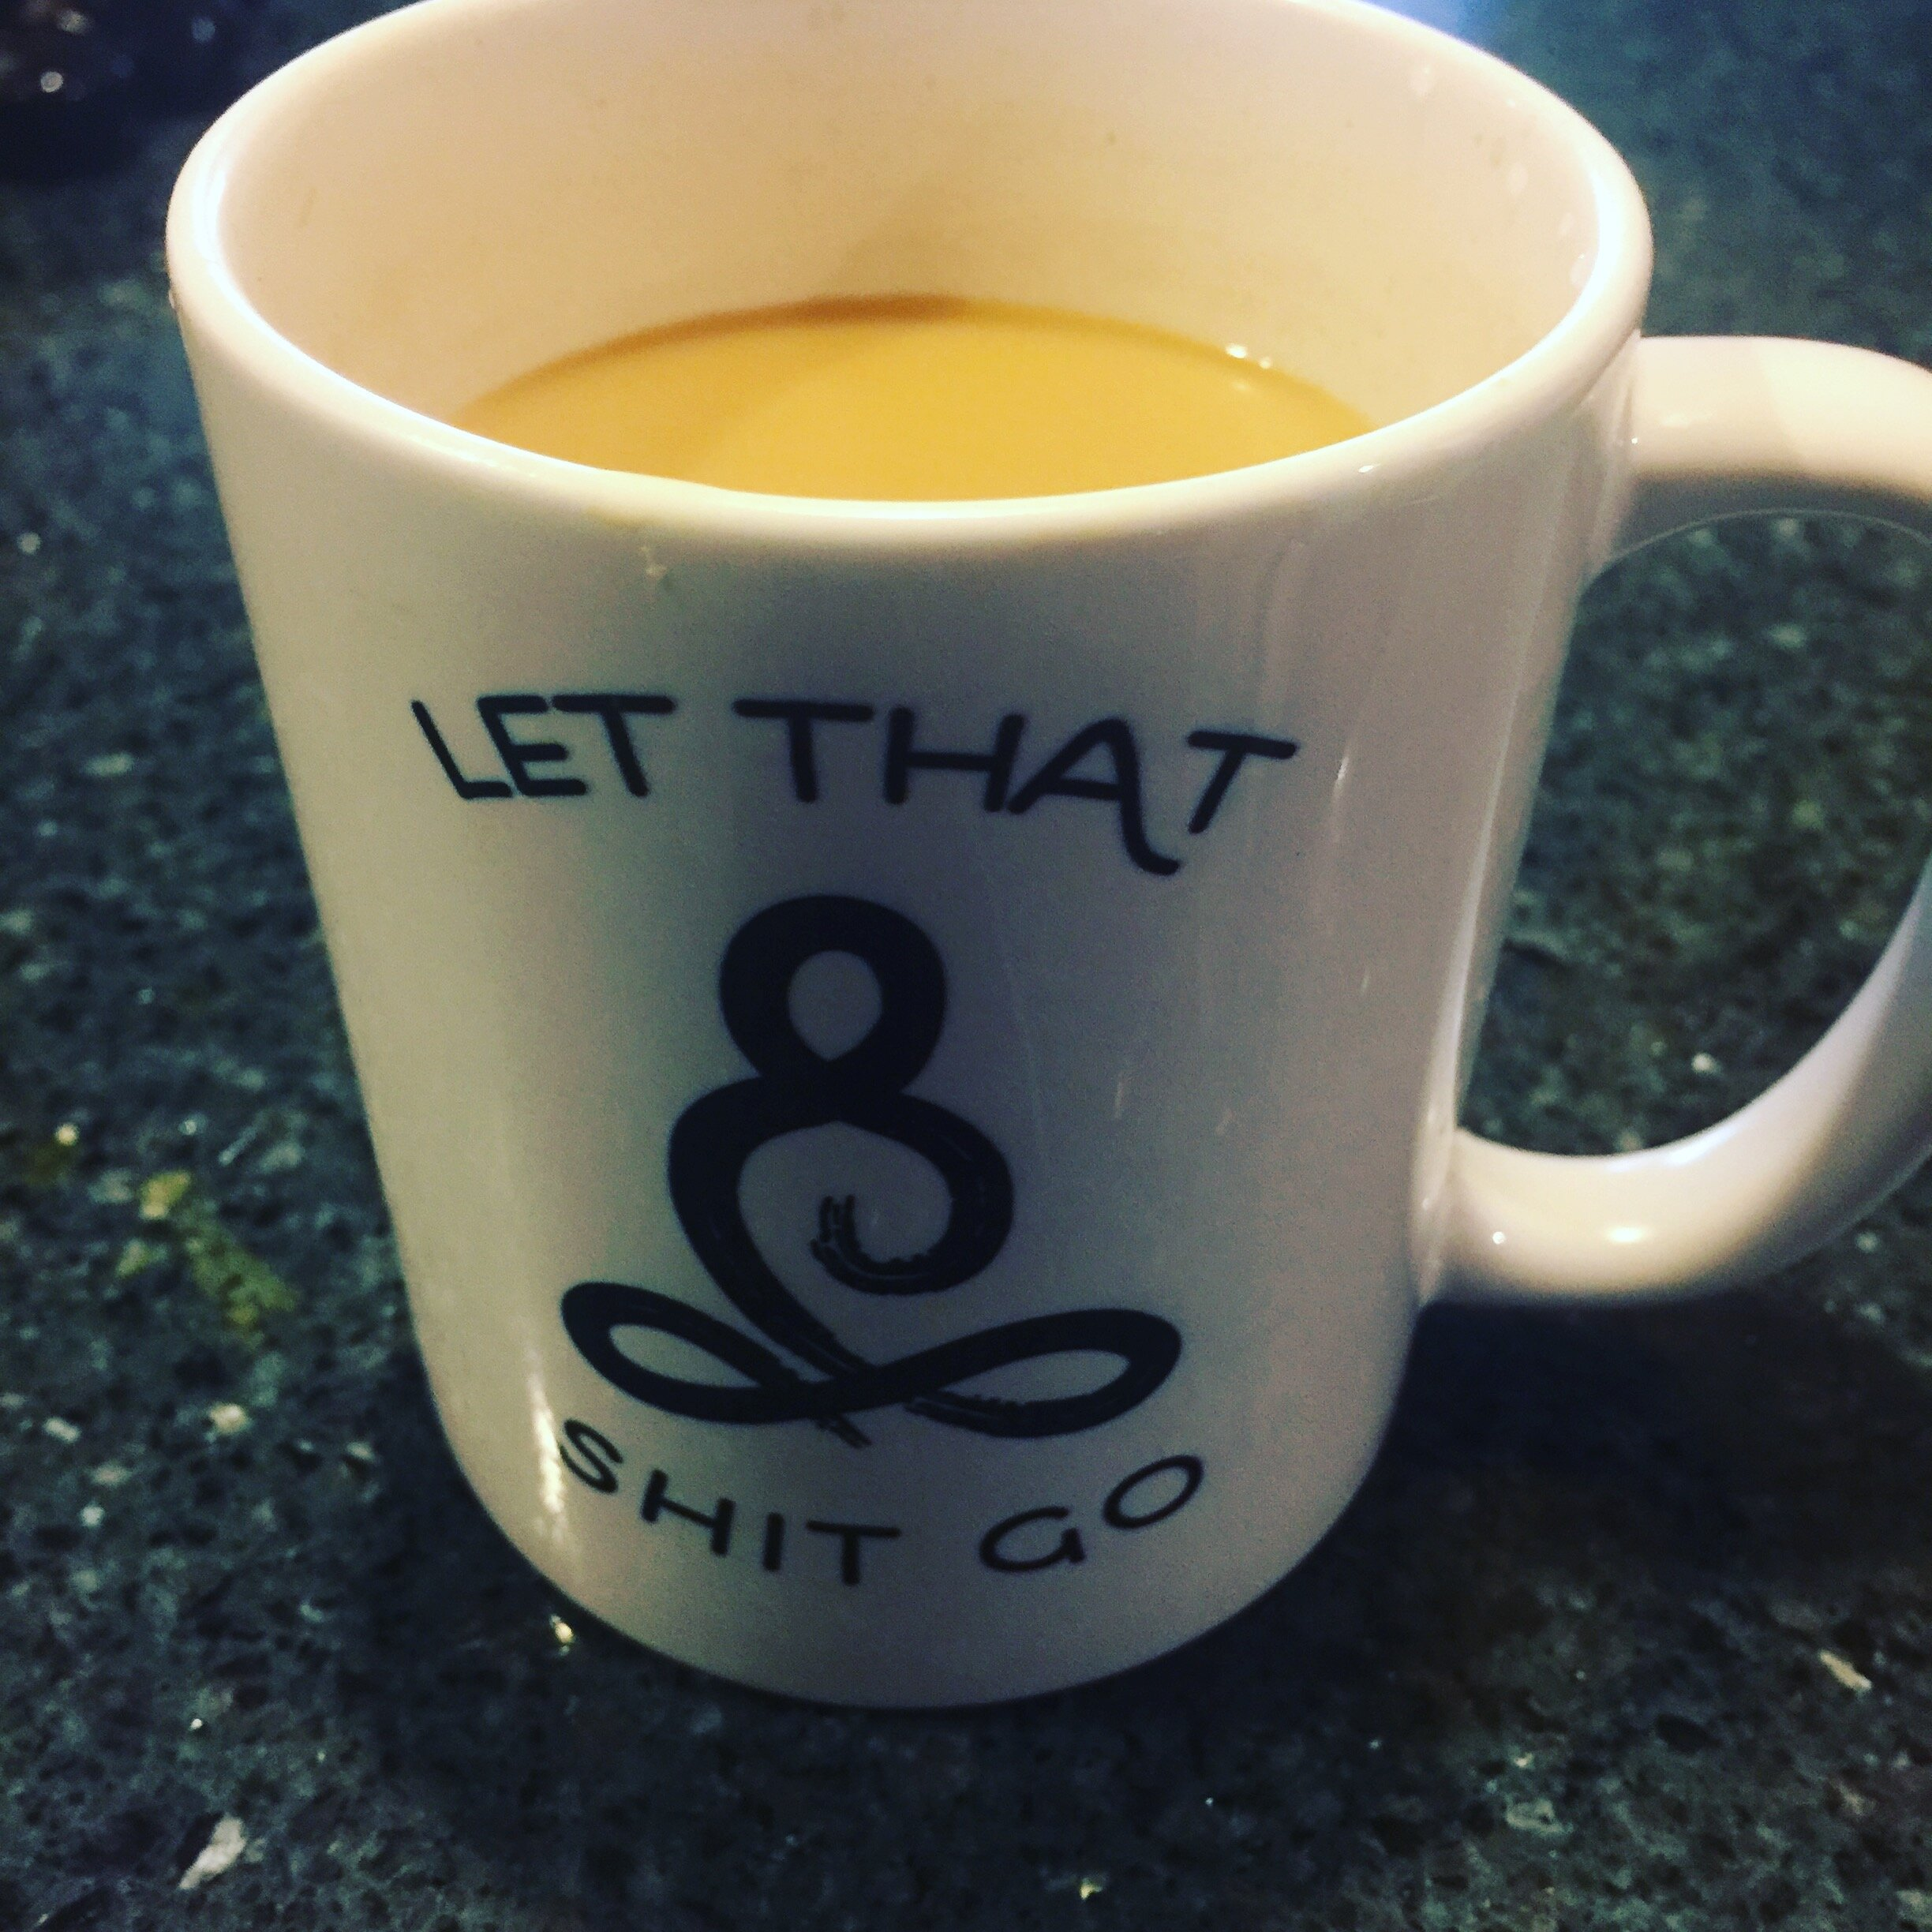 """My other cousin Patti shared with me that this is a special coffee re-lated gift from her husband. She was going thru a tough time, having lost her sister as well as having her own health and family issues. When he gave her this  pinch , it represented the message of what he had been saying all along, """"Life is short..let that shit go and move on."""""""